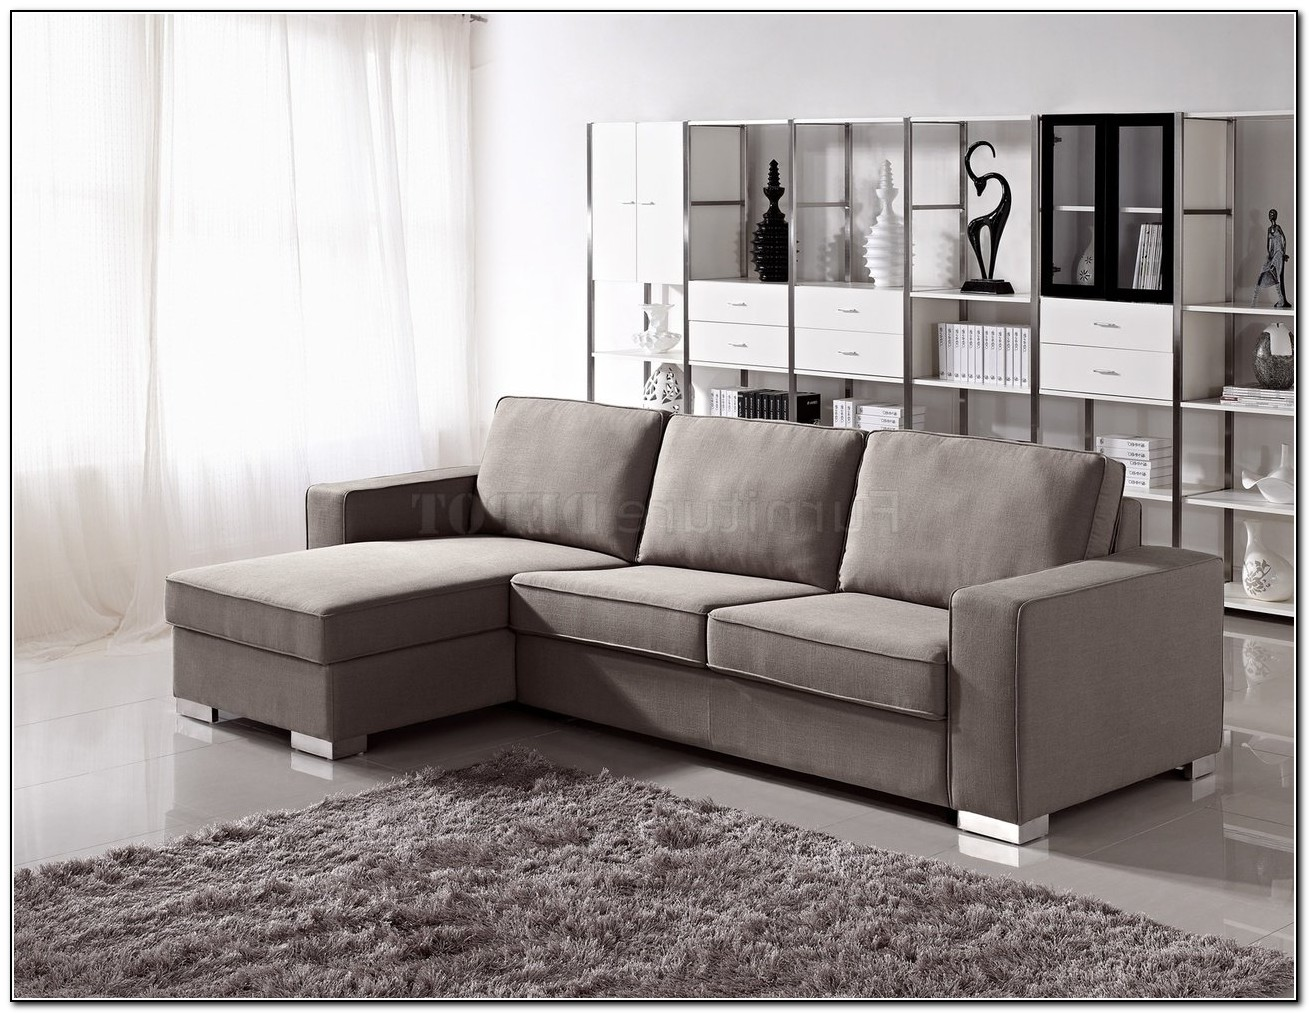 Convertible sectional sofa bed beds home design ideas for Sectional sofa that converts to bed